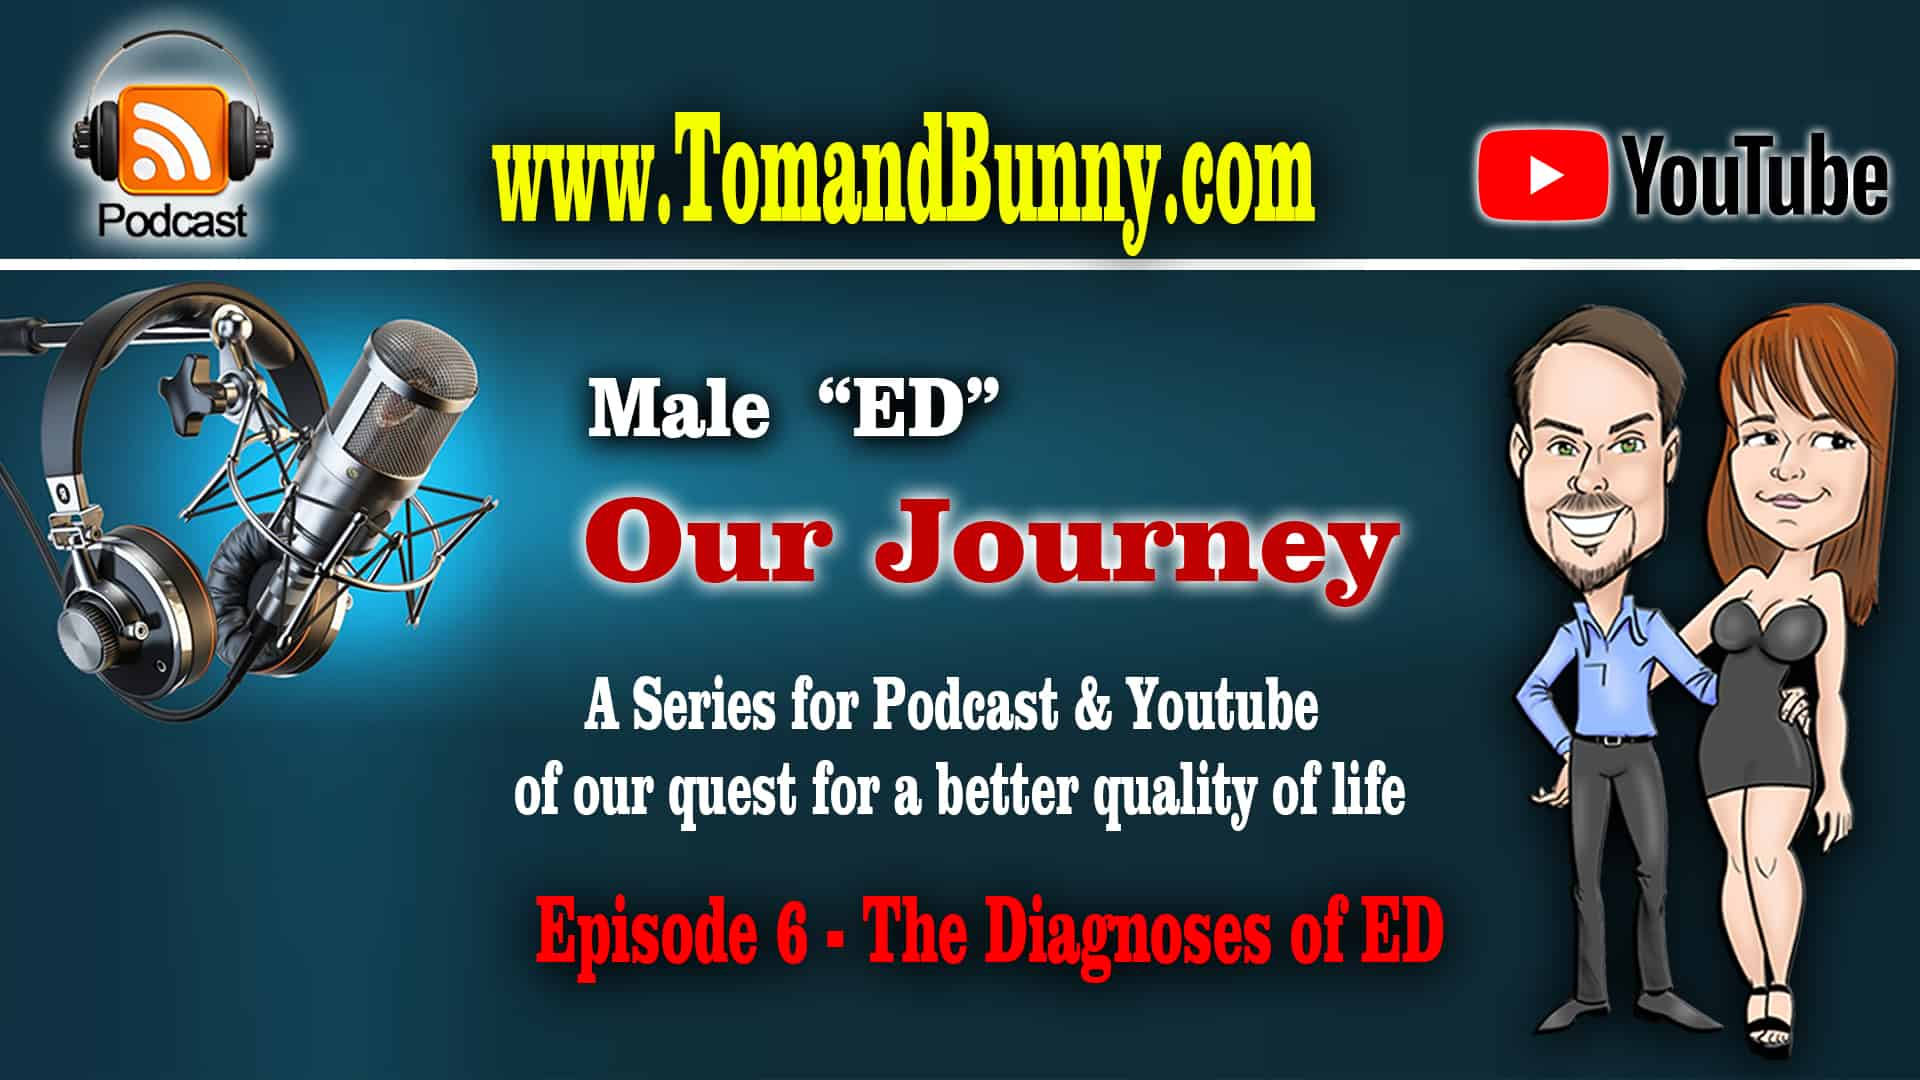 Episode 6 - The Diagnoses of ED